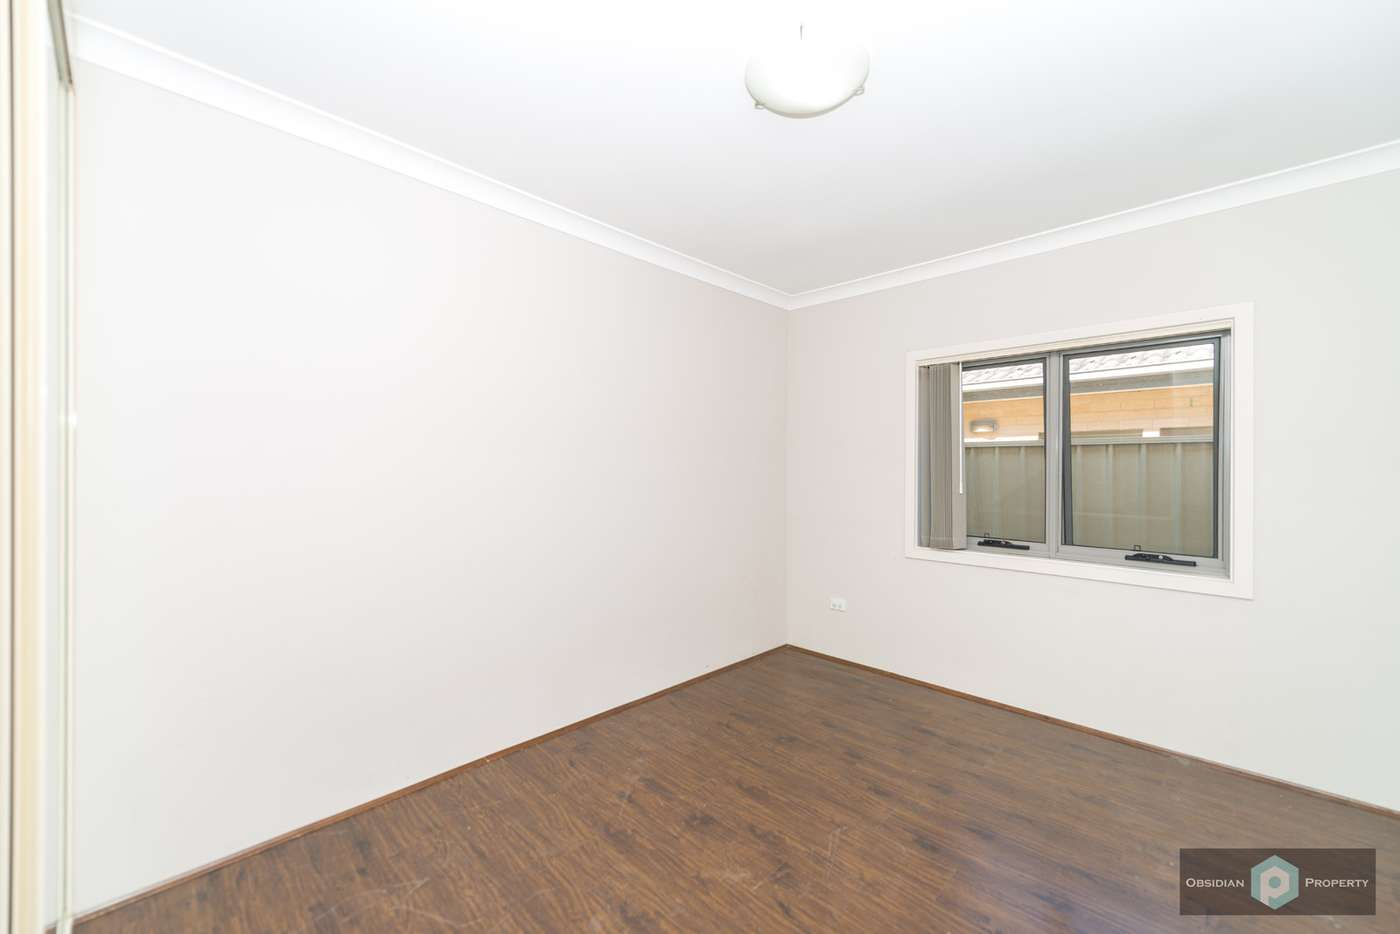 Sixth view of Homely villa listing, 19/11-17 Broadarrow Road, Beverly Hills NSW 2209